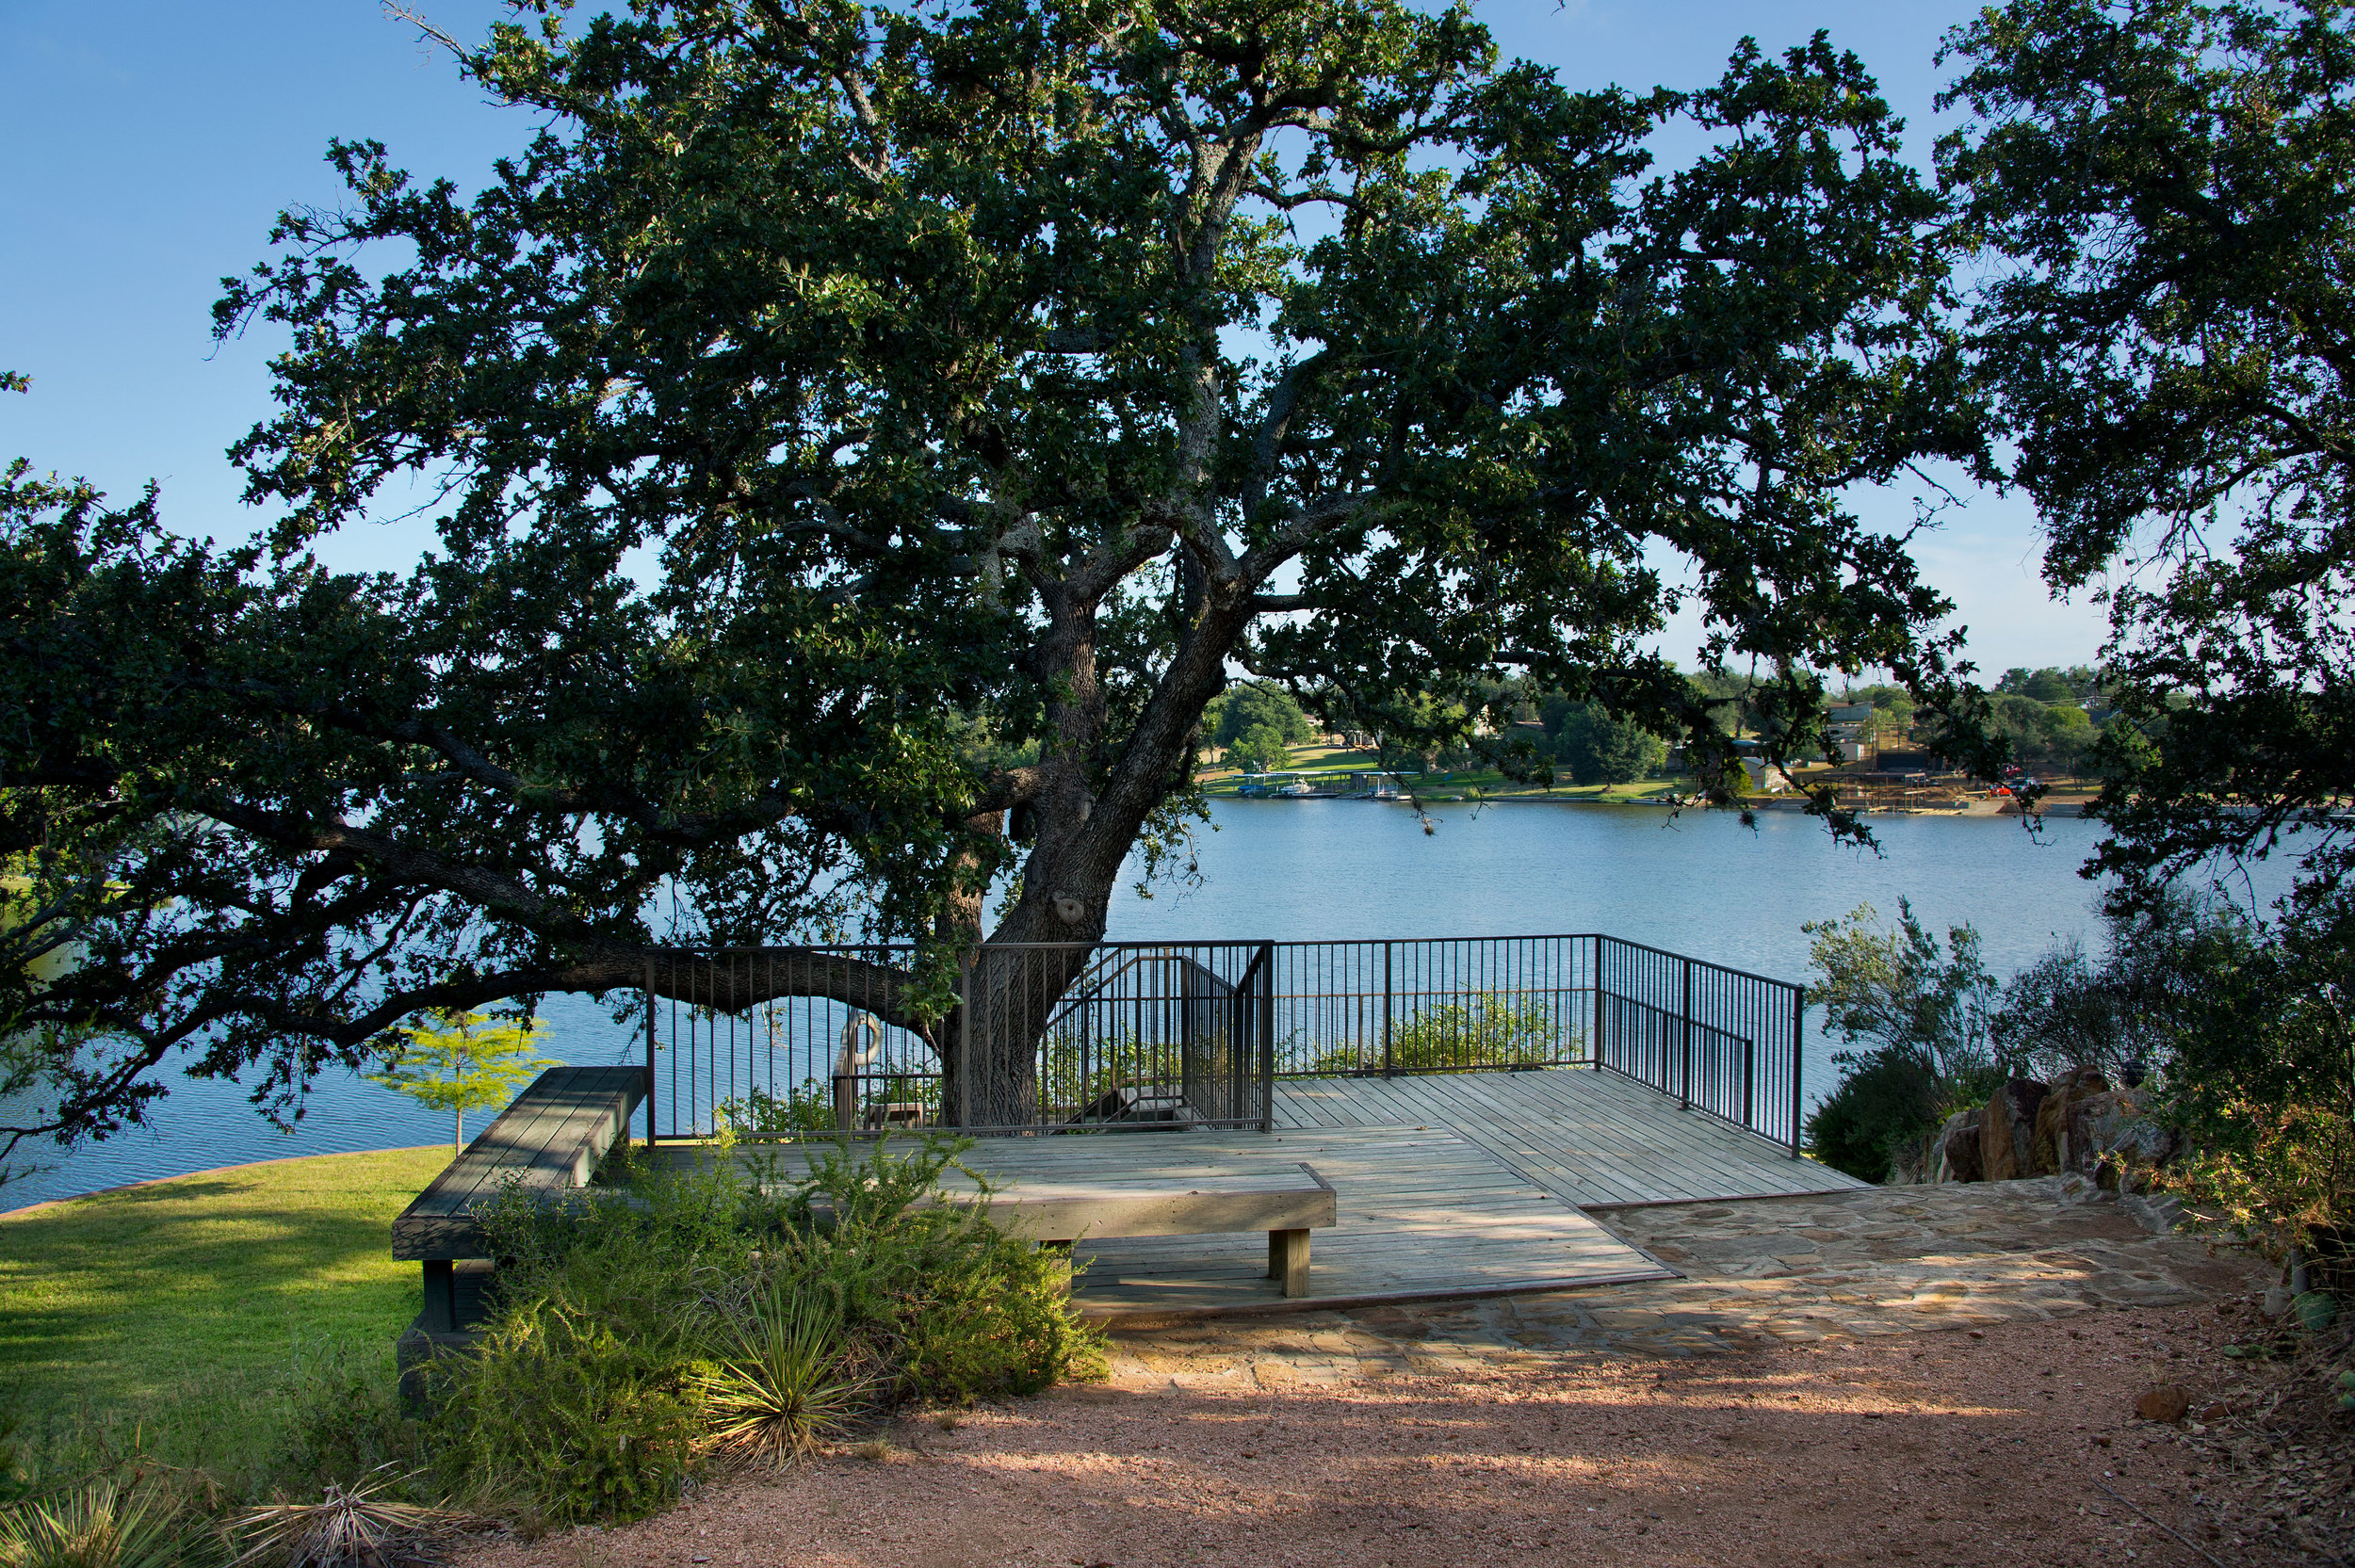 Waterside View of Lake LBJ at Trails of Horseshoe Bay